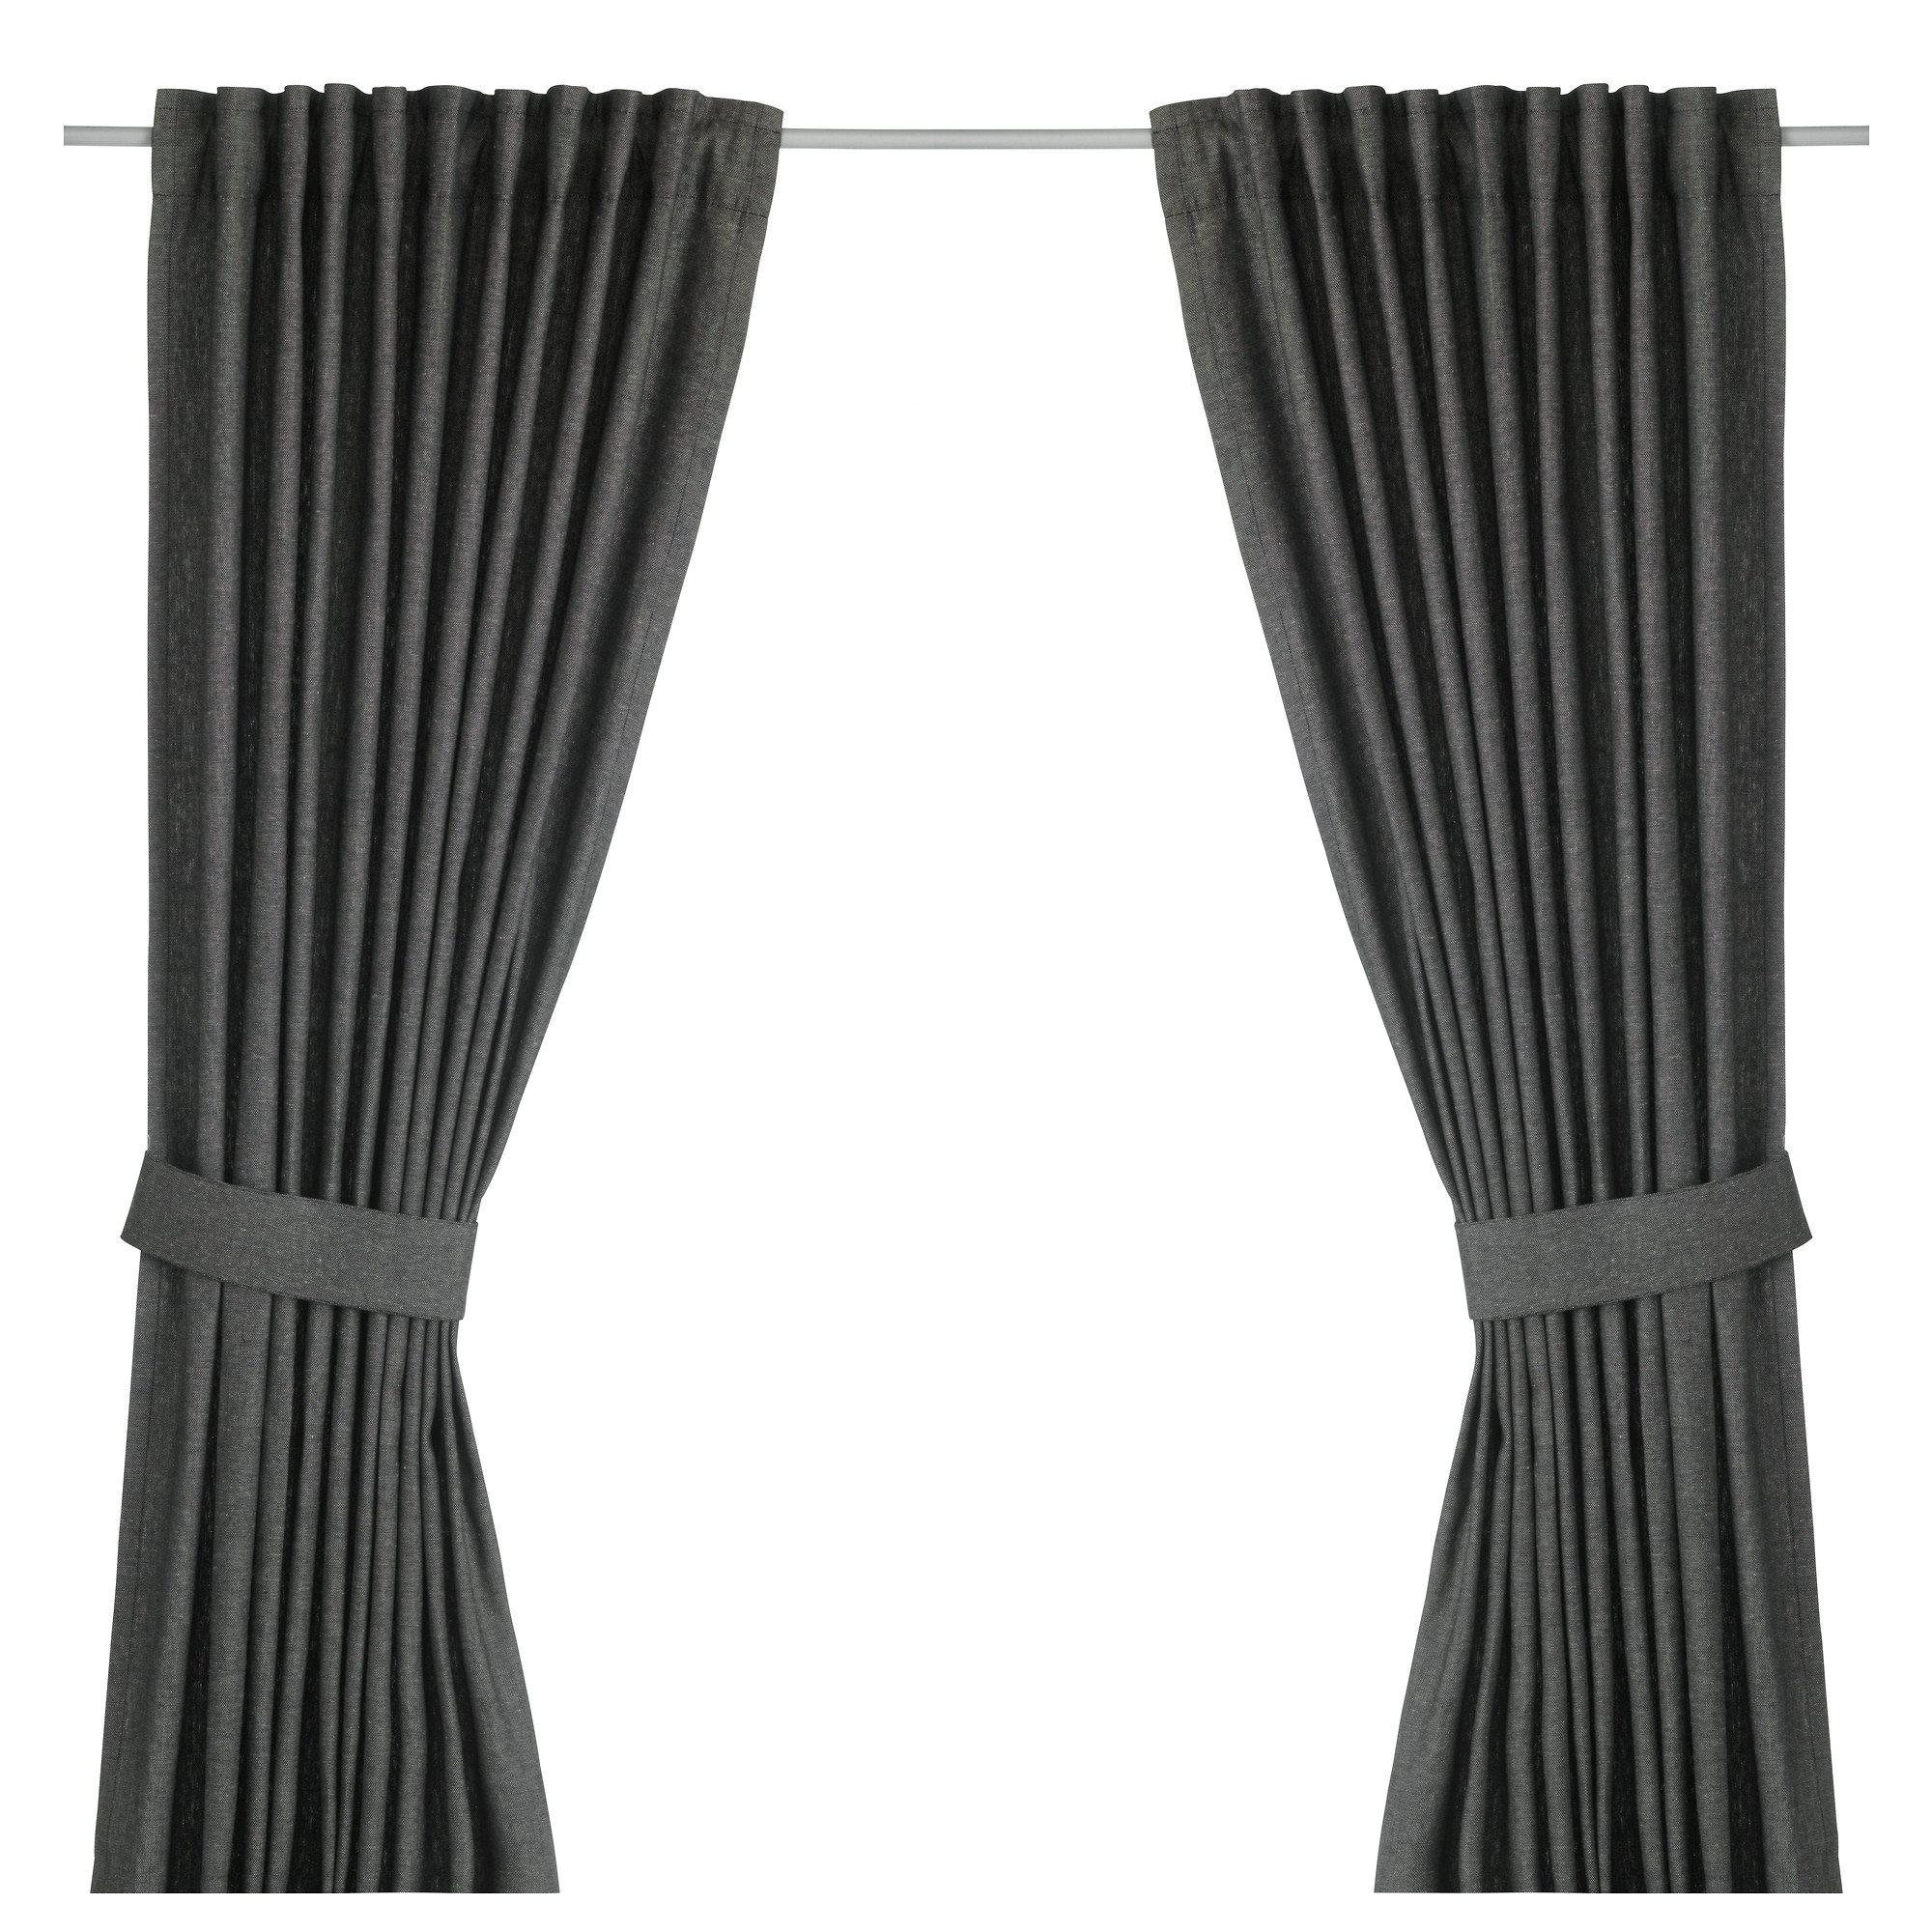 INGERT Curtains with tie-backs, 1 pair - IKEA for Curtain Holdbacks Ikea  117dqh